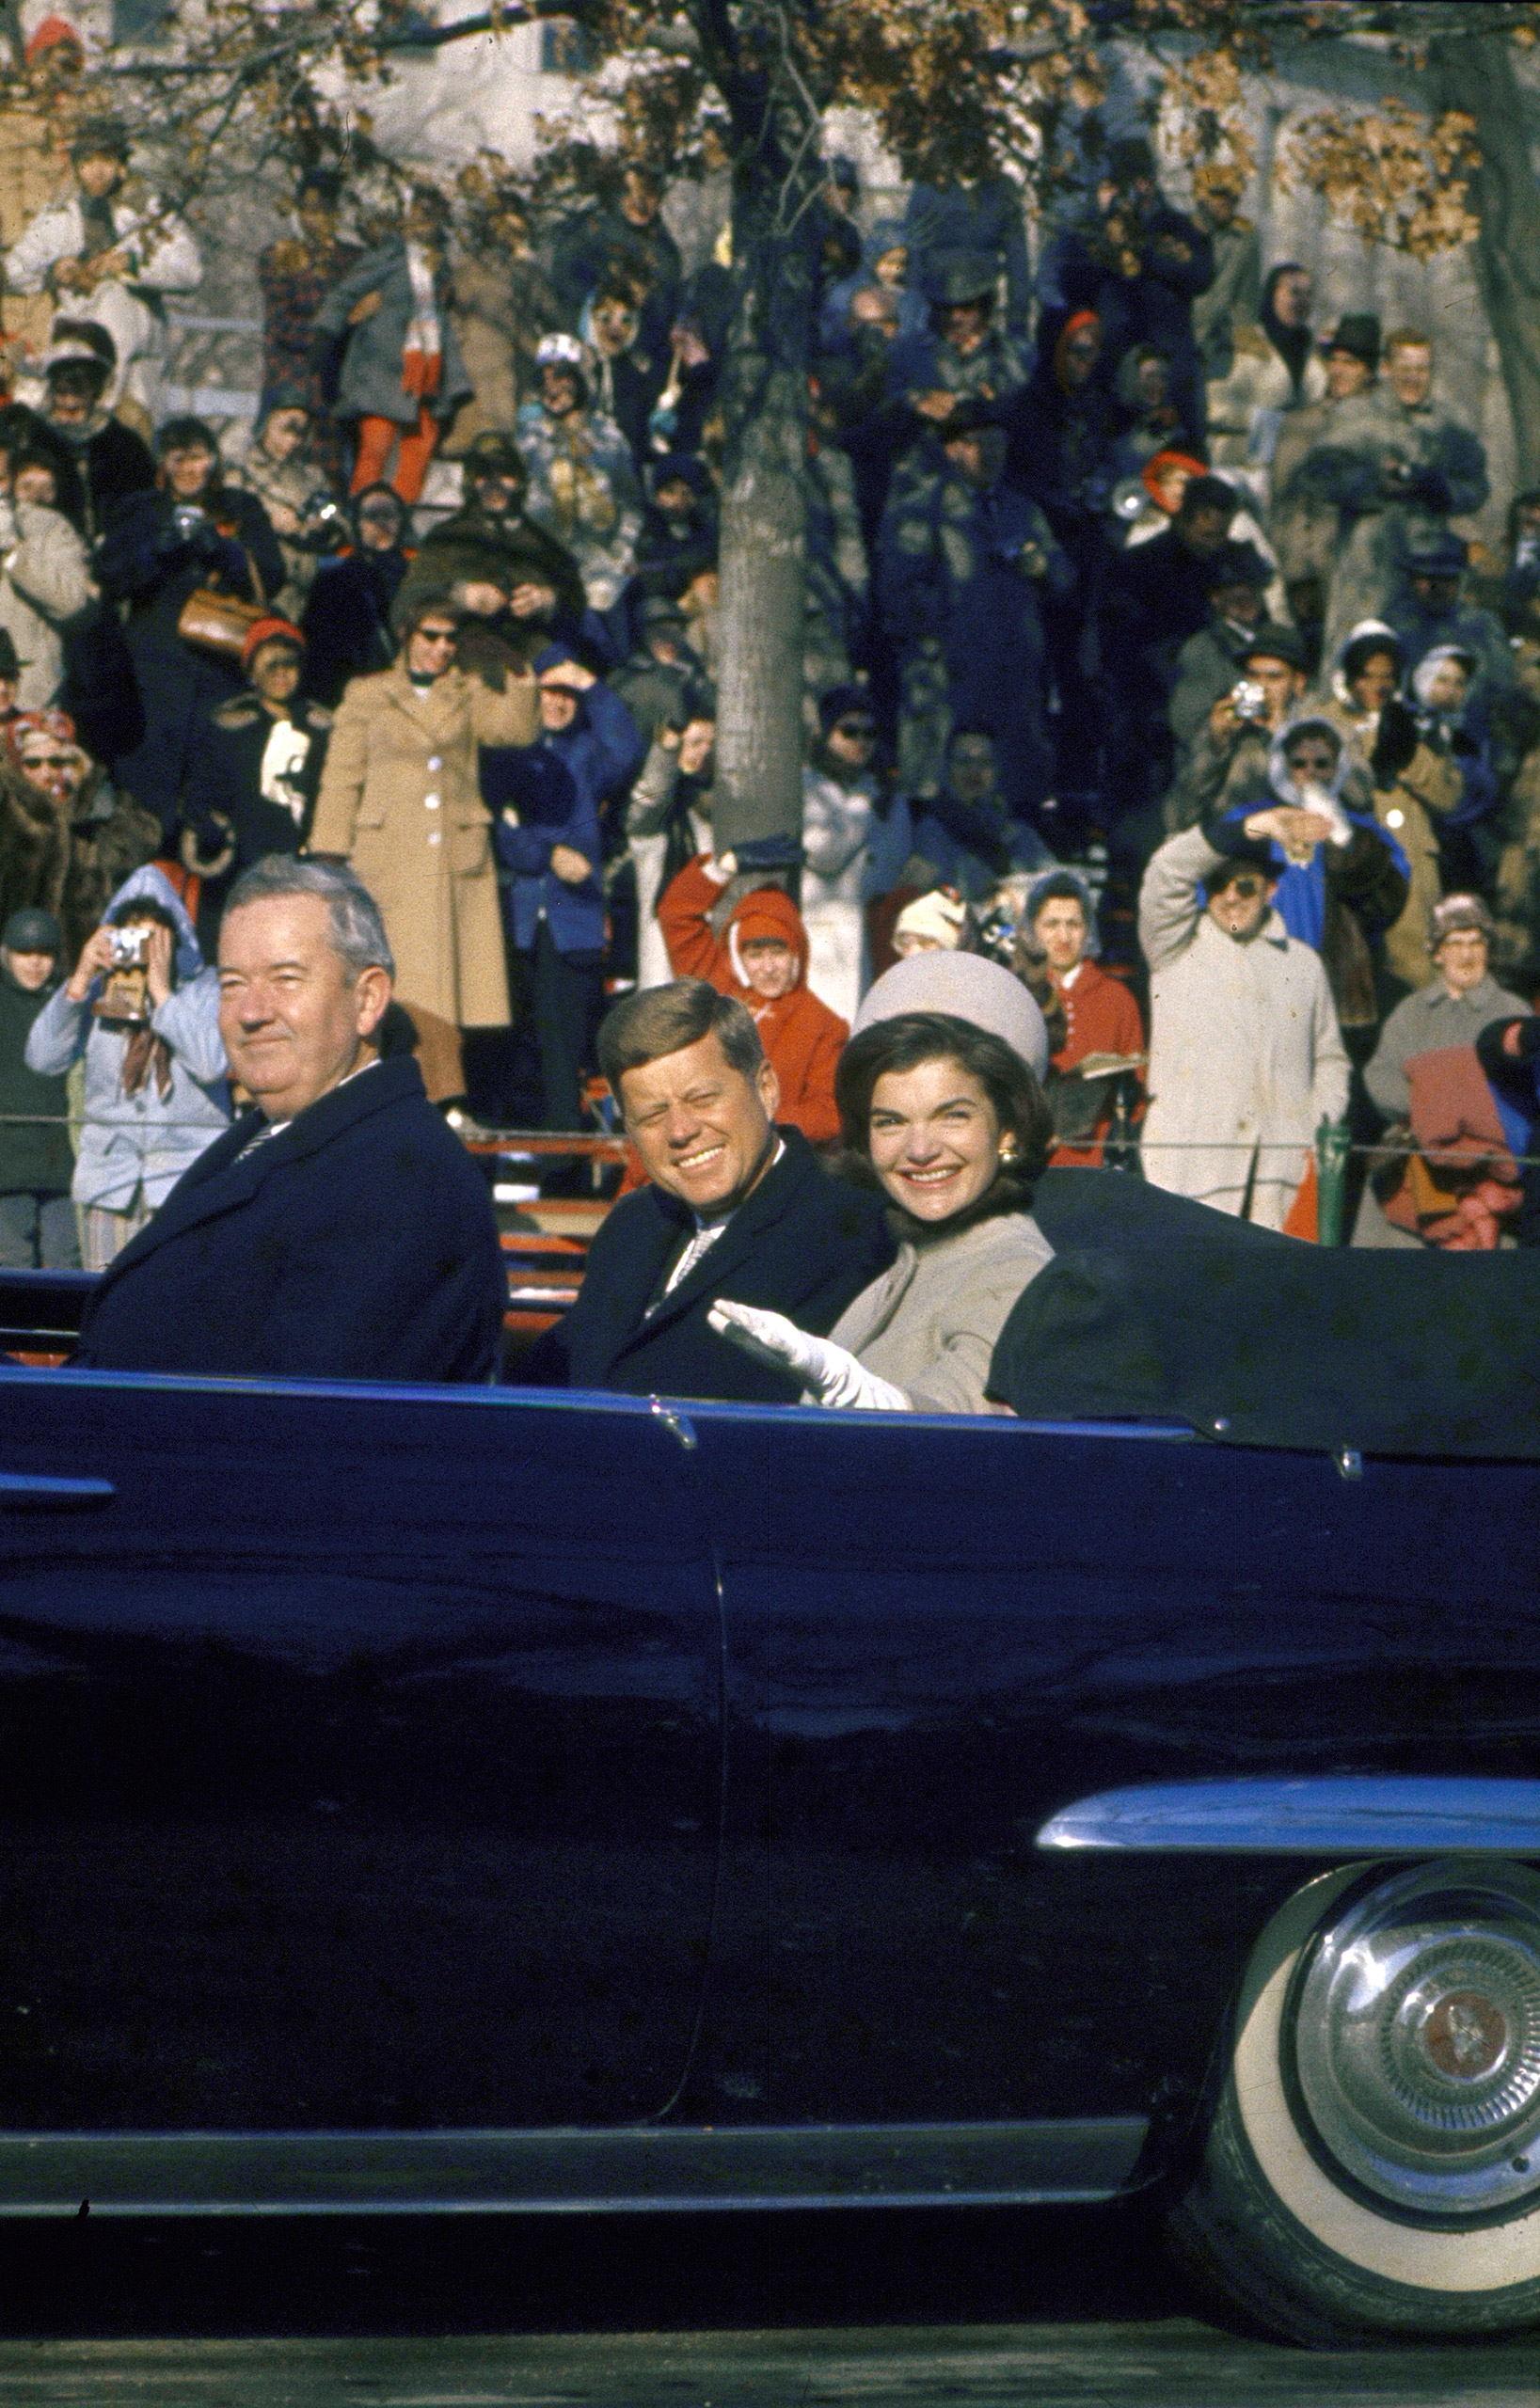 President John Kennedy and wife Jacqueline during the Inauguration Day Parade, 1961.